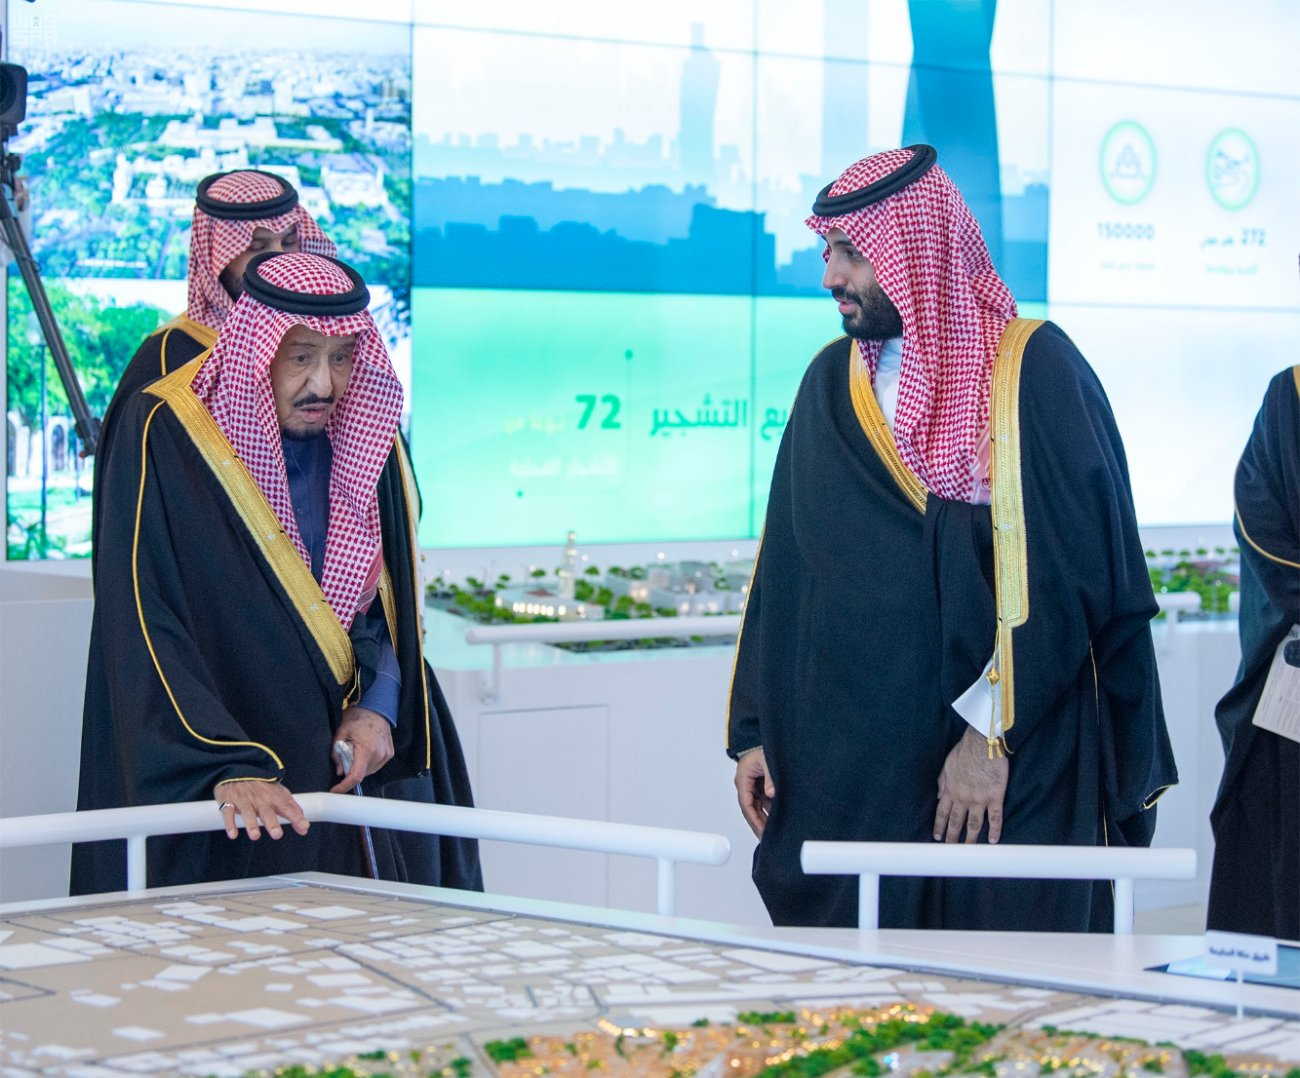 When completed, Riyadh's green coverage will increase from 1.5 percent of Riyadh's total area to 9.1 percent, according to Arab News.